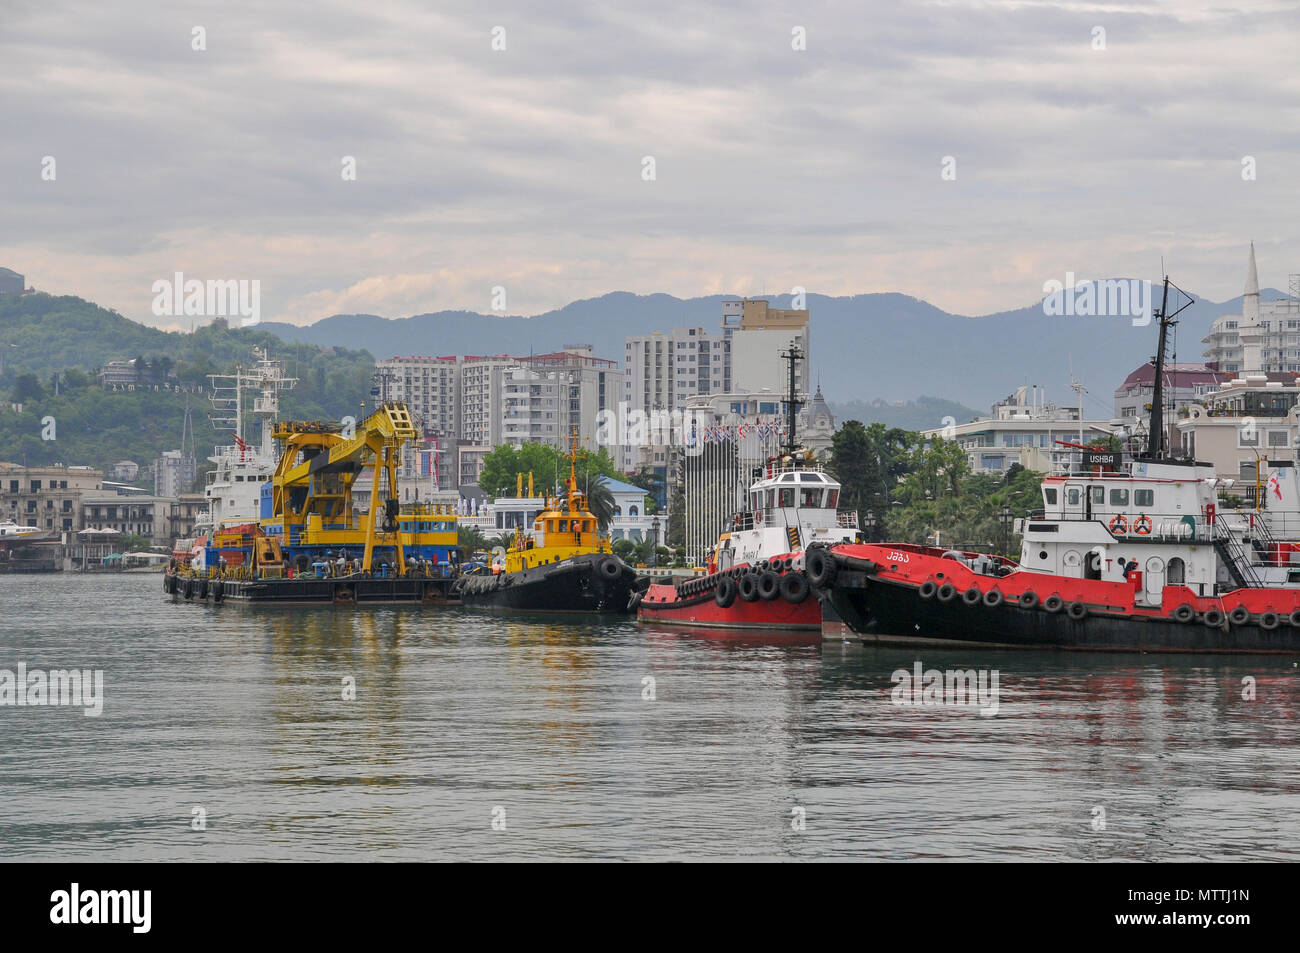 Tugboats at the port of Batumi, Georgia - Stock Image